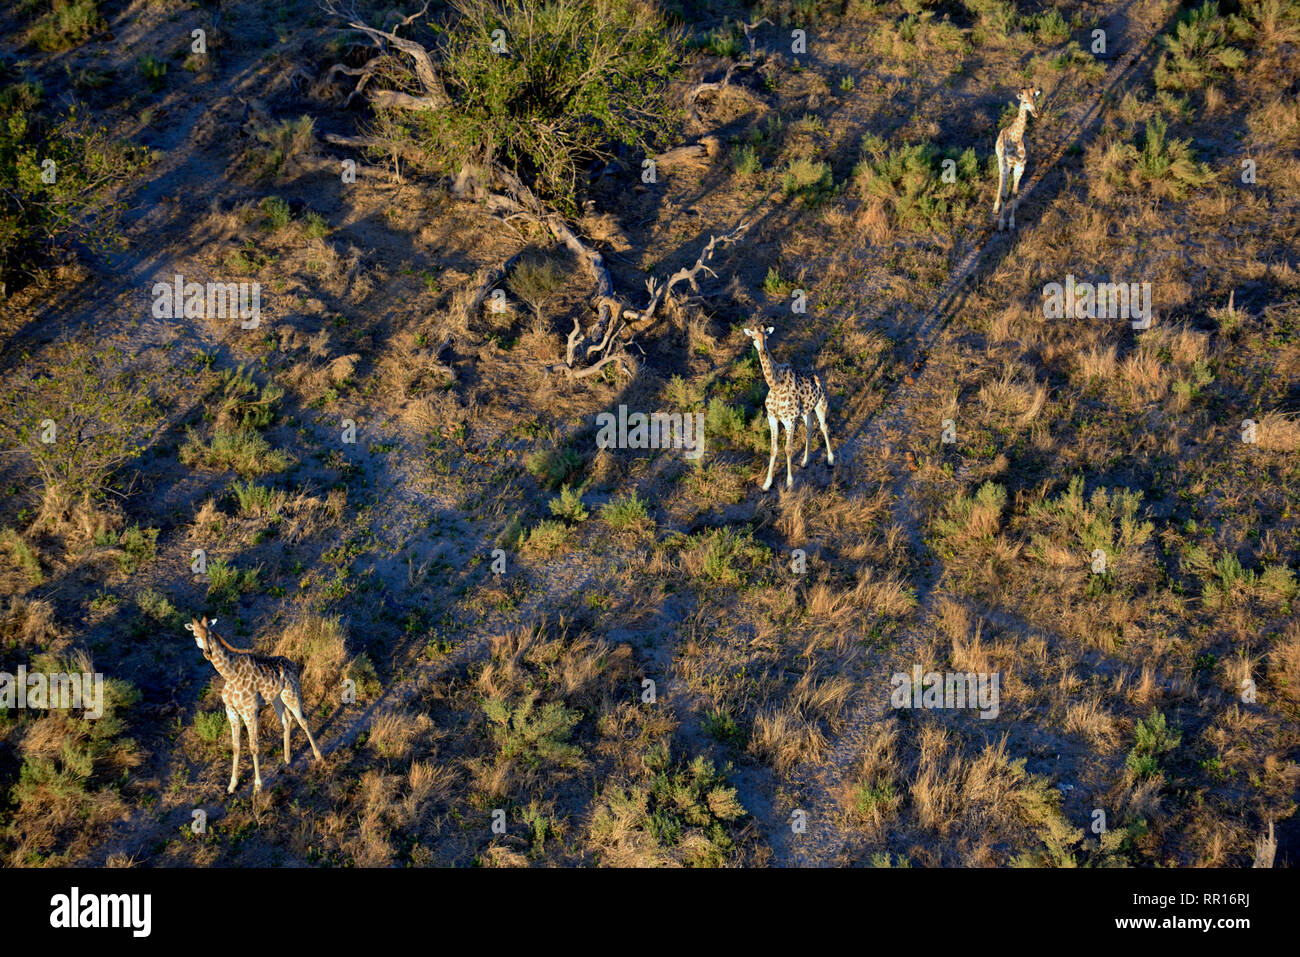 zoology, mammal (mammalia), Cape giraffe (Giraffa camelopardalis Giraffa), aerial photograph, Gomoti P, Additional-Rights-Clearance-Info-Not-Available - Stock Image